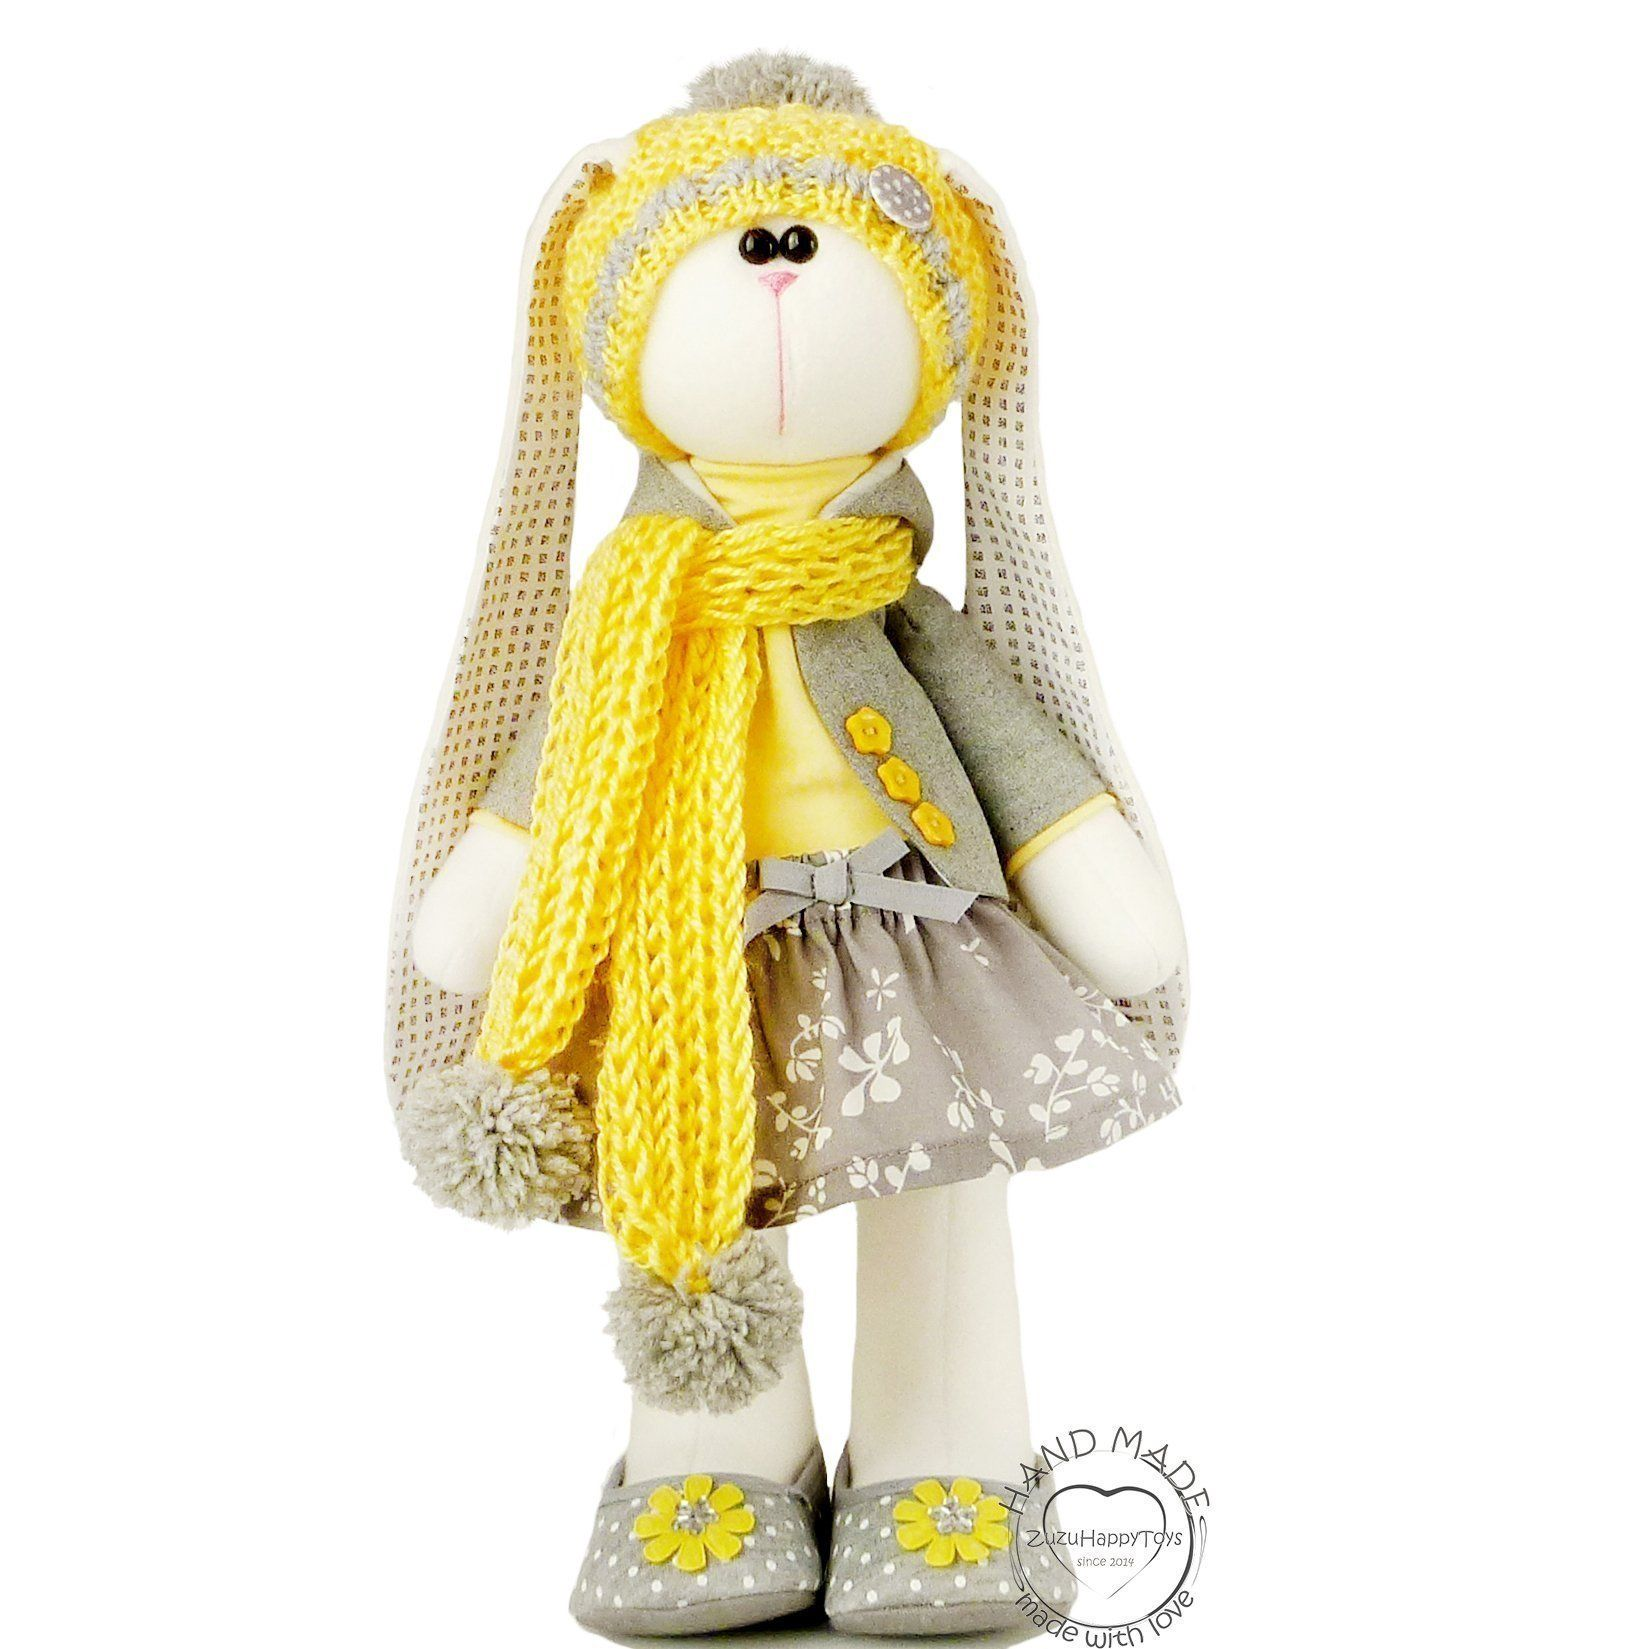 Easter bunny toy, Fabric doll bunny 14 inch for girl, Easter rabbit plush. Limited edition. Height 37 сm (14.57″) The toy is sold together with the clothes, as in the photo. Made with love and care about the quality. It is filled with polyester fiberfill (like pearl) which is child friendly. These soft toys are well suited as a toy for children, as well as baby gift or even as a home decor. Not for children under 3 years. Attention! Without shoes rabbit unstable.